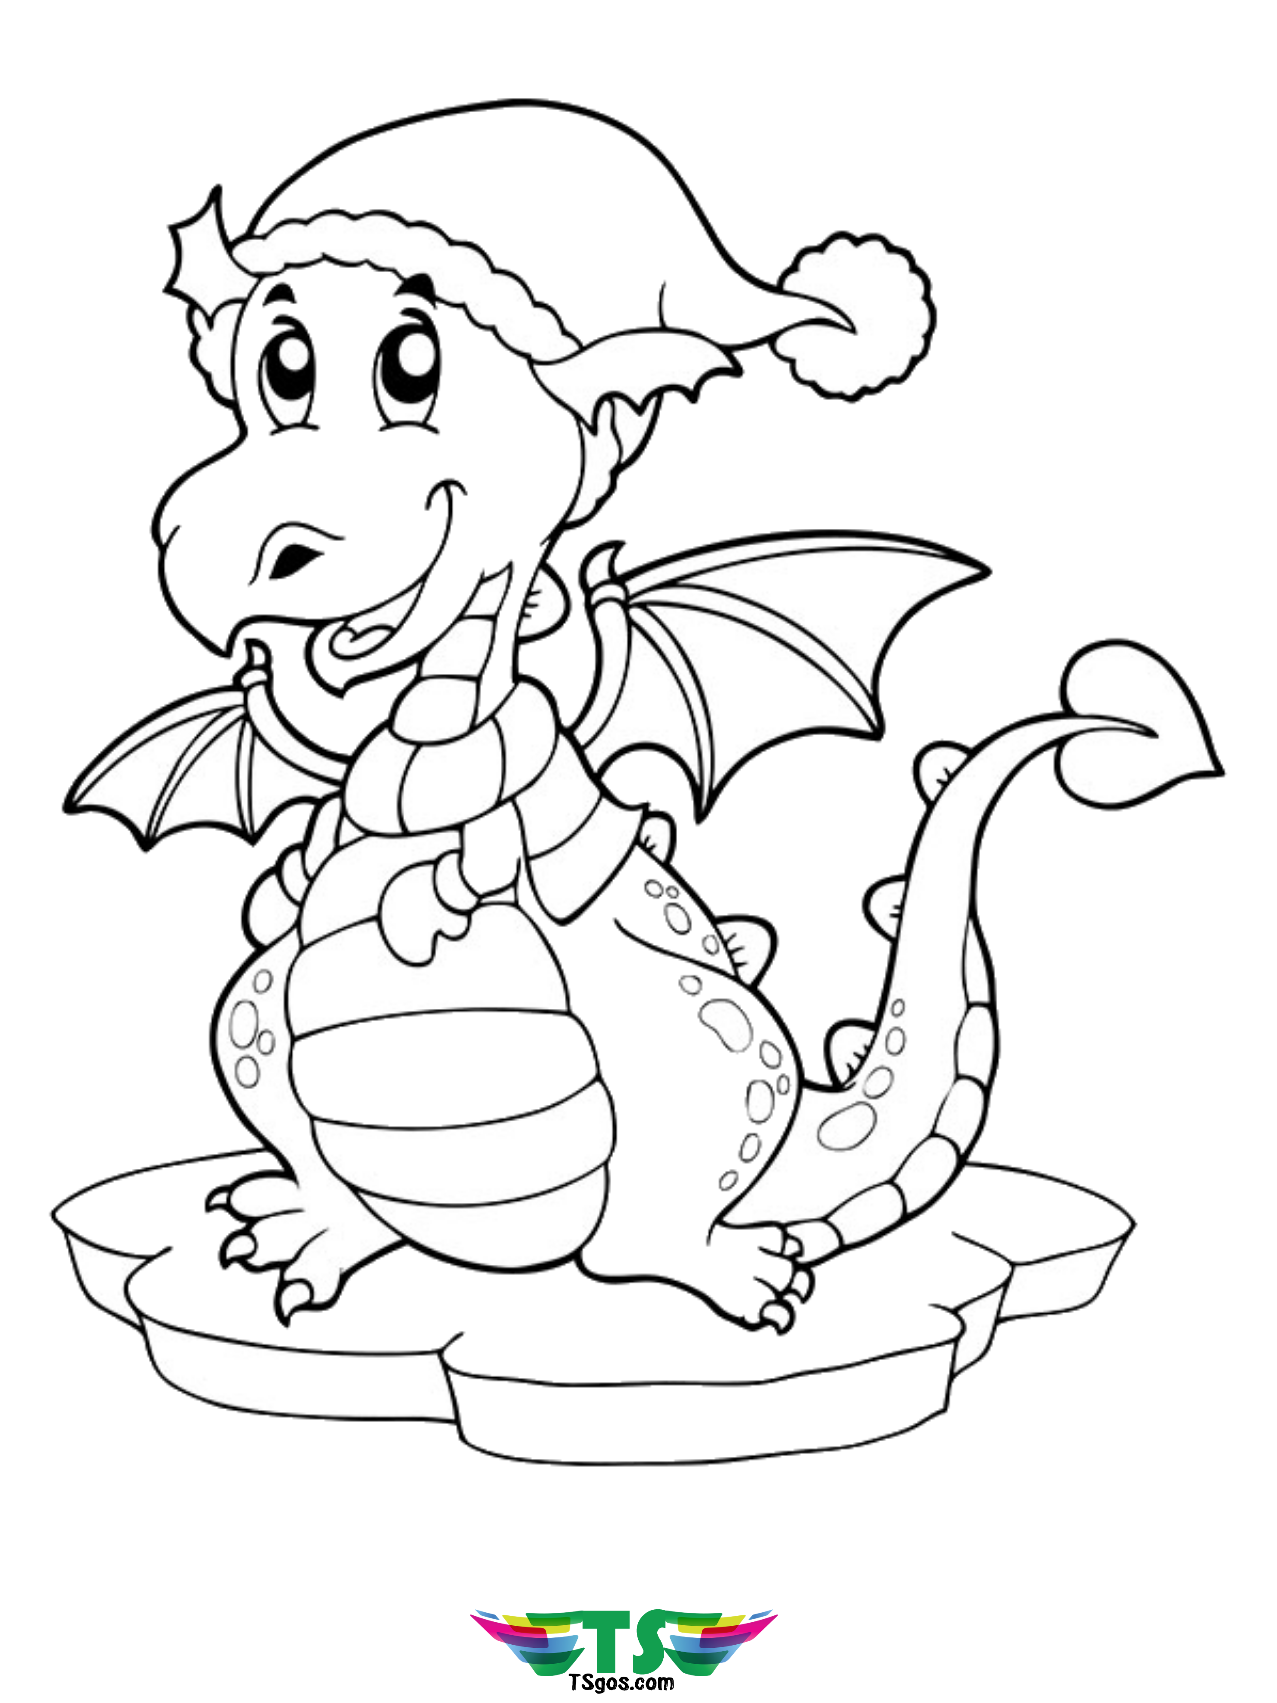 - Cute Little Dragon With Cap Coloring Page Easy Coloring For